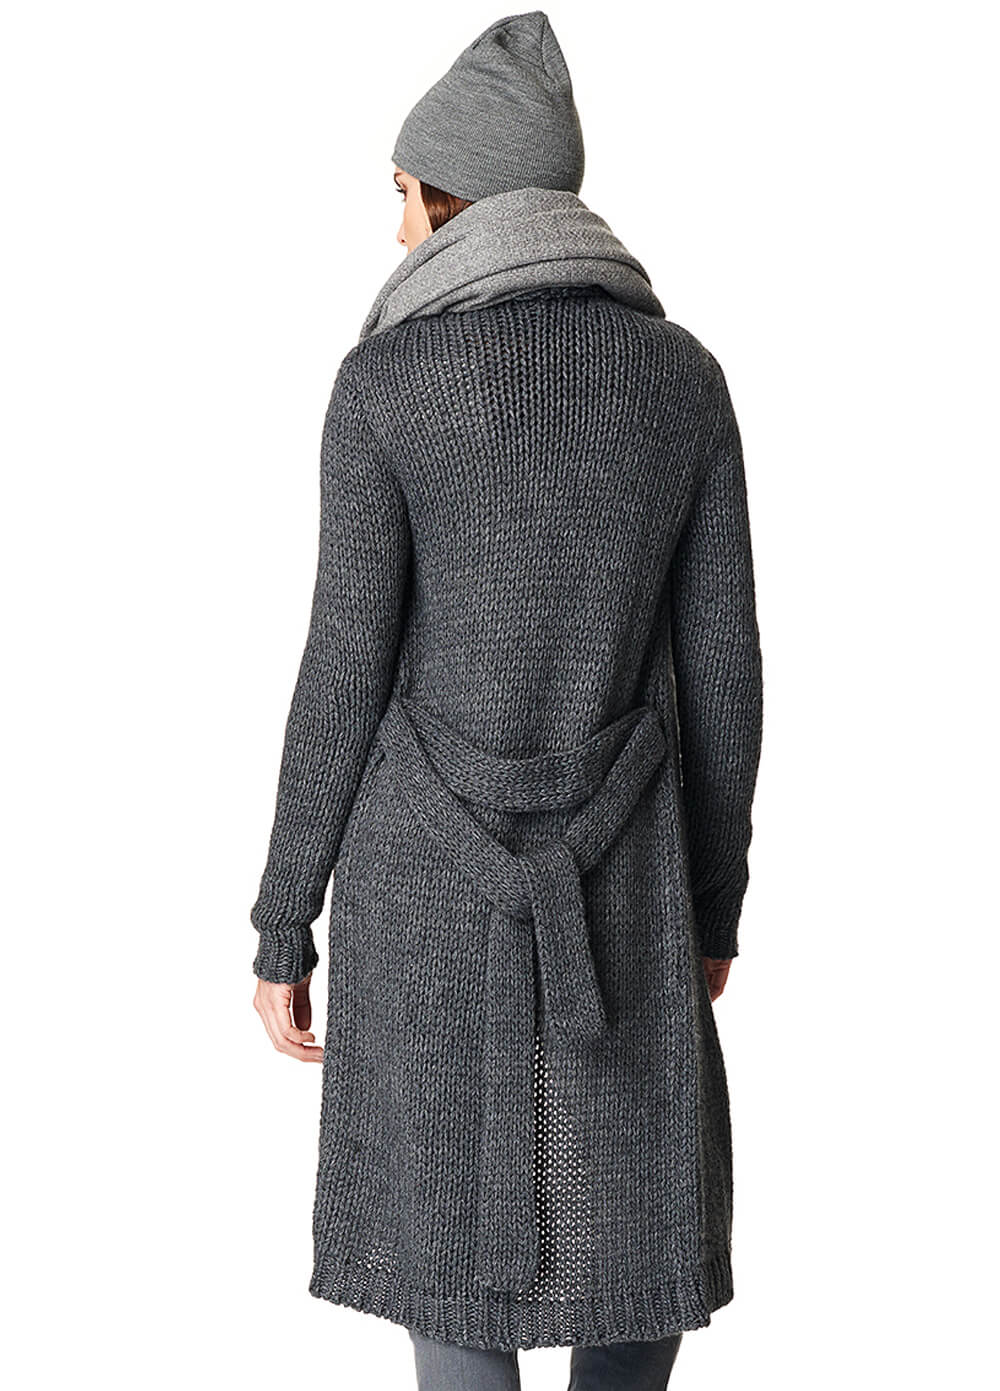 Hazel Maternity Knit Long Cardigan in Grey by Noppies